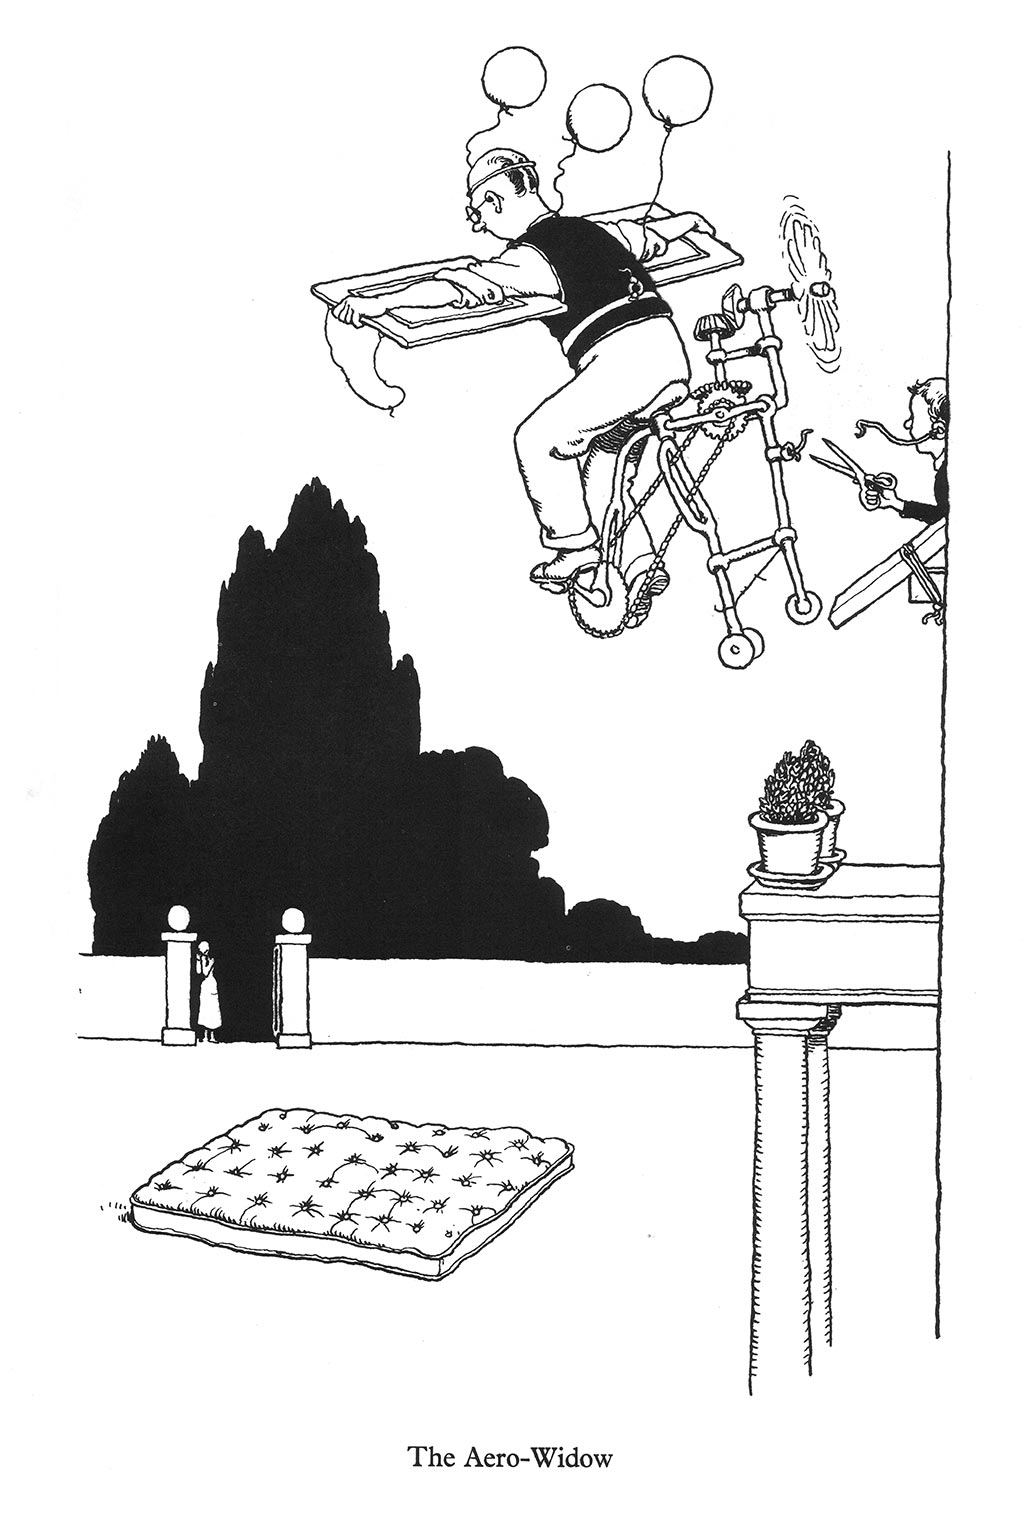 william_heath_robinson_inventions_-_page_026